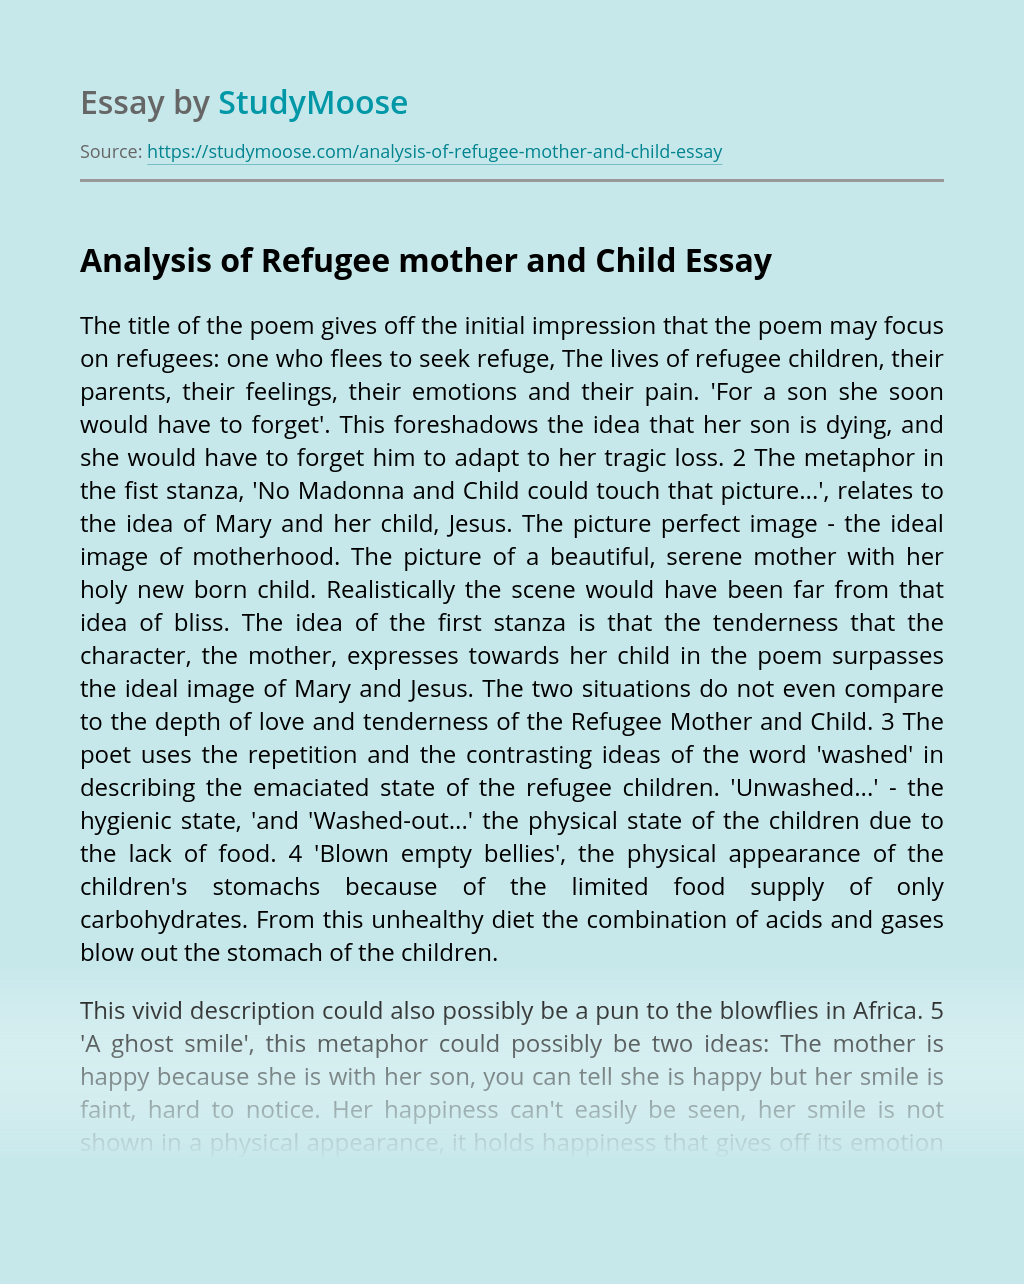 Analysis of Refugee mother and Child